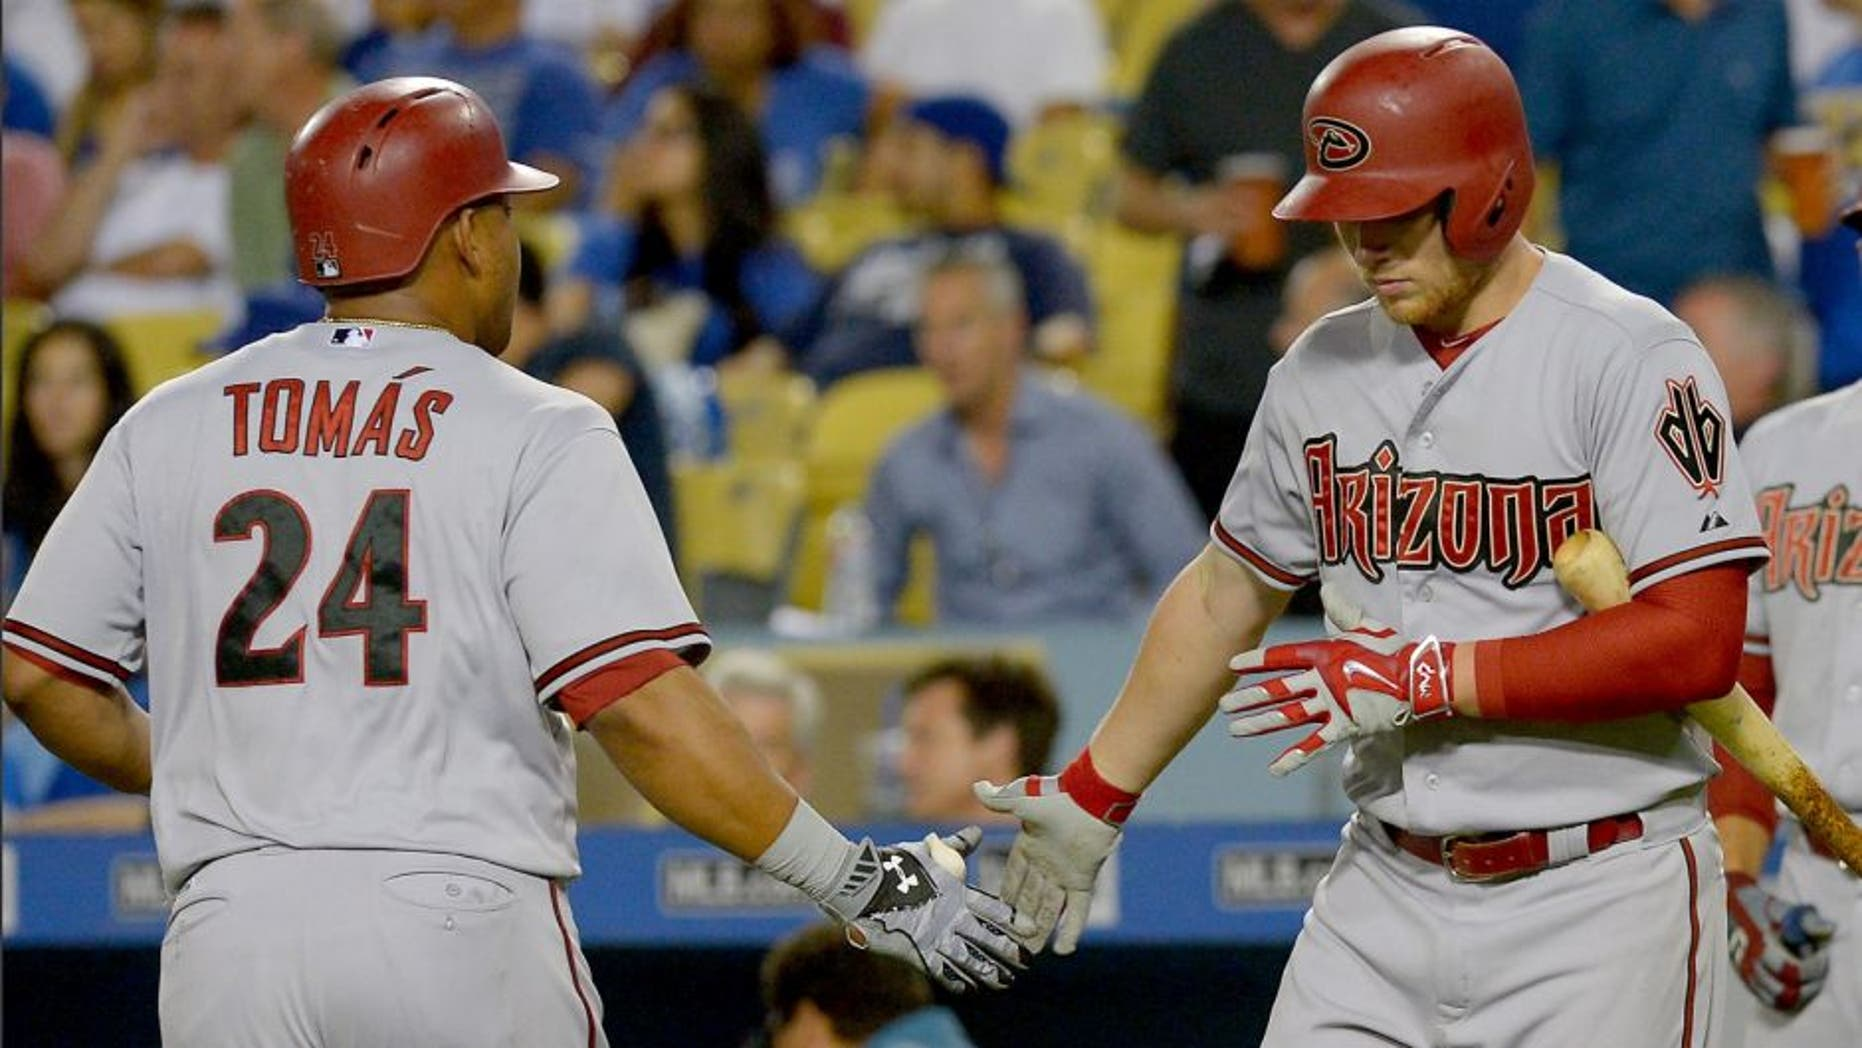 Sep 21, 2015; Los Angeles, CA, USA; Arizona Diamondbacks right fielder Yasmany Tomas (24) is greeted by Arizona Diamondbacks third baseman Brandon Drury (62) after a solo home run in the fourth inning of the game against the Los Angeles Dodgers at Dodger Stadium. Mandatory Credit: Jayne Kamin-Oncea-USA TODAY Sports